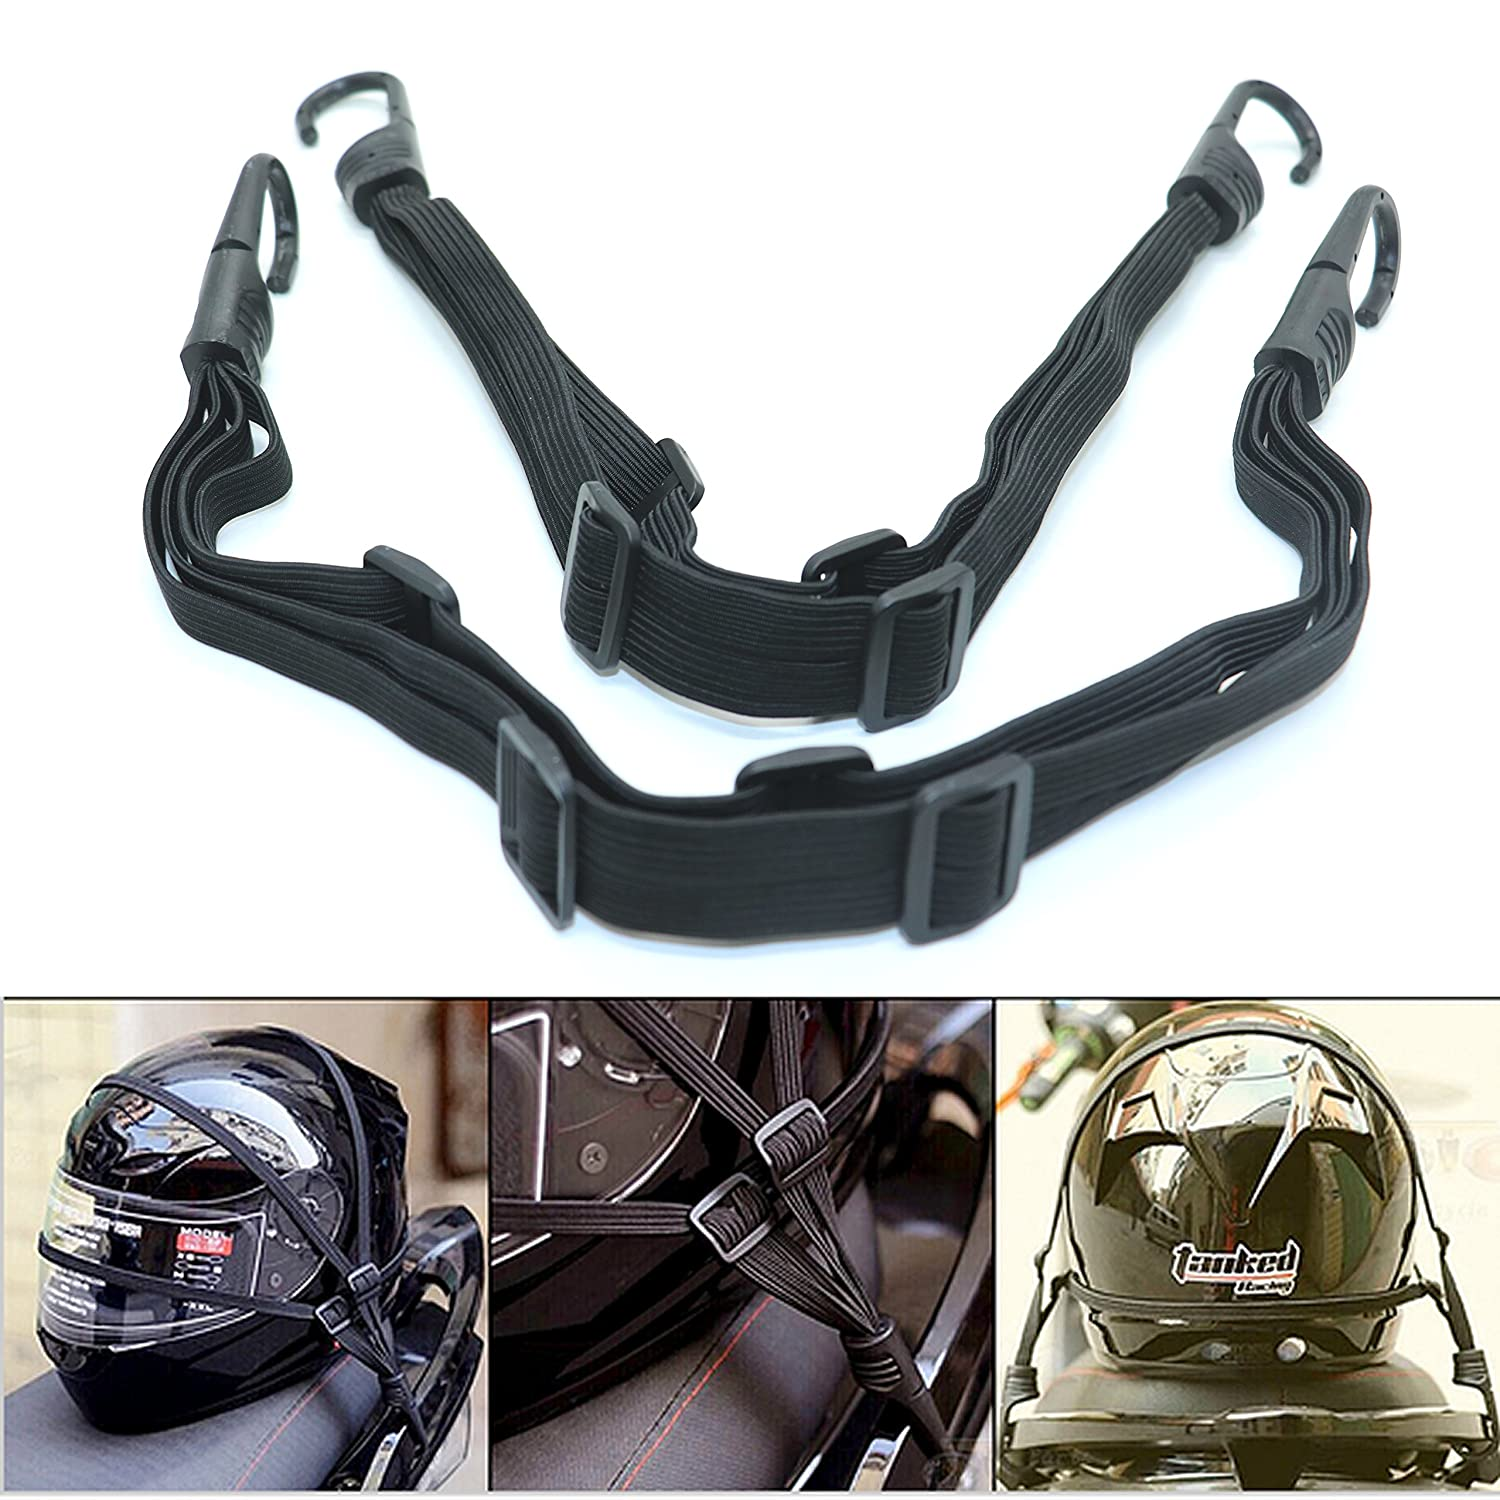 IDS 2 Pcs Motorcycle Helmet Luggage Rope Bungee Cord Bandage Strapping Tape Elastic Strap with 2 hooks Black